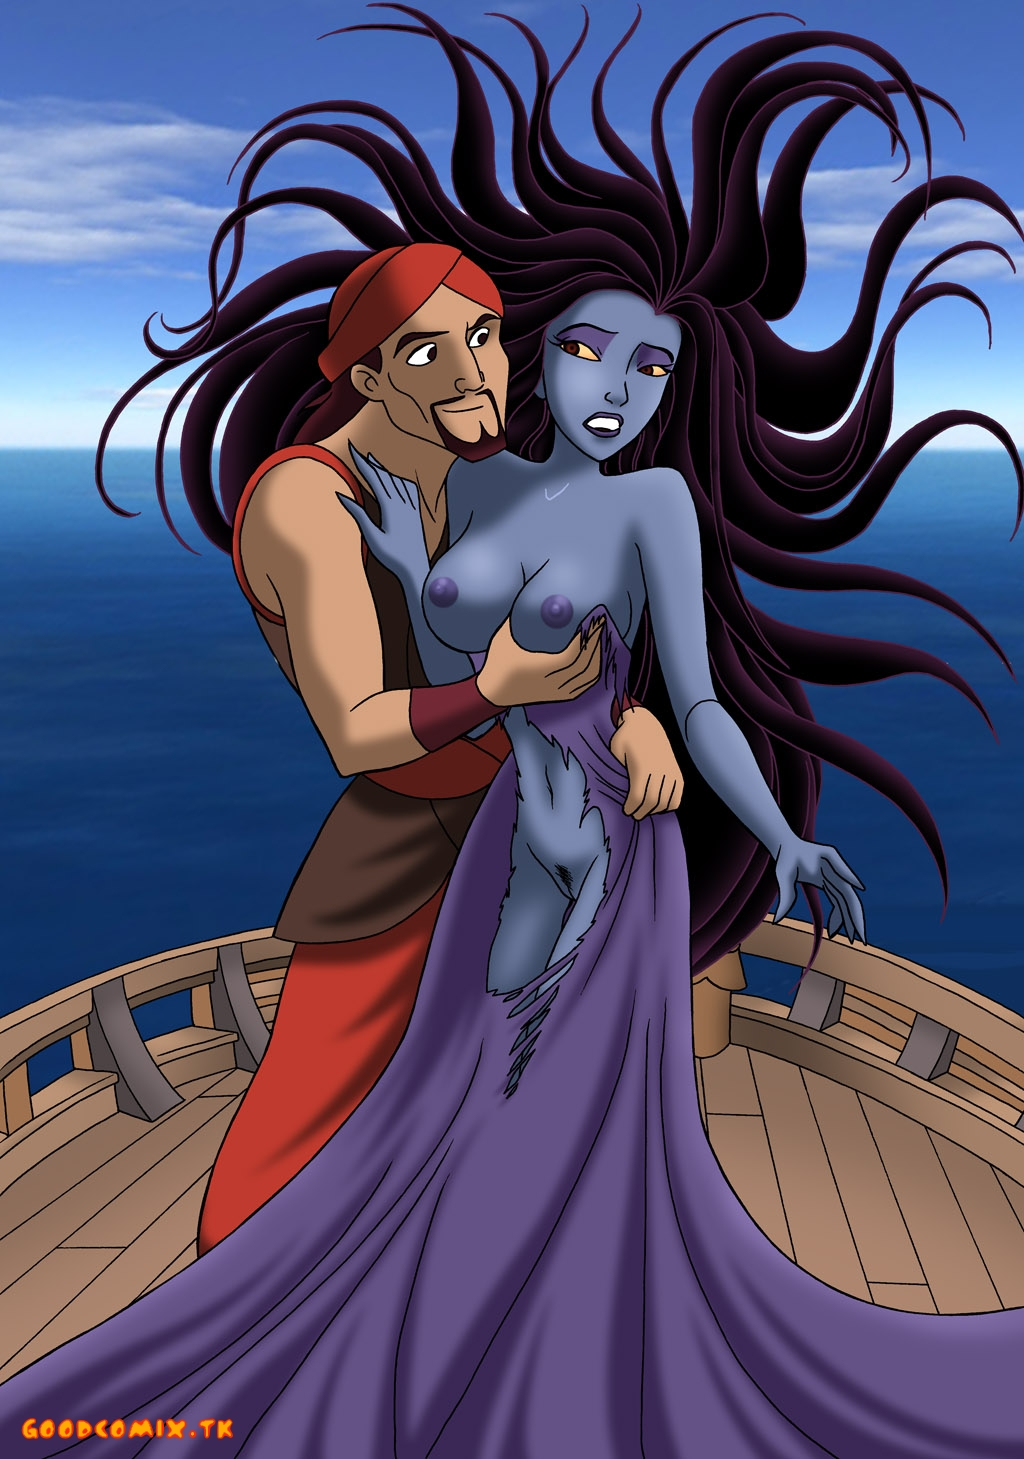 Goodcomix Sinbad Legend of the Seven Seas - [Palcomix] - Sinbad and Eris xxx porno